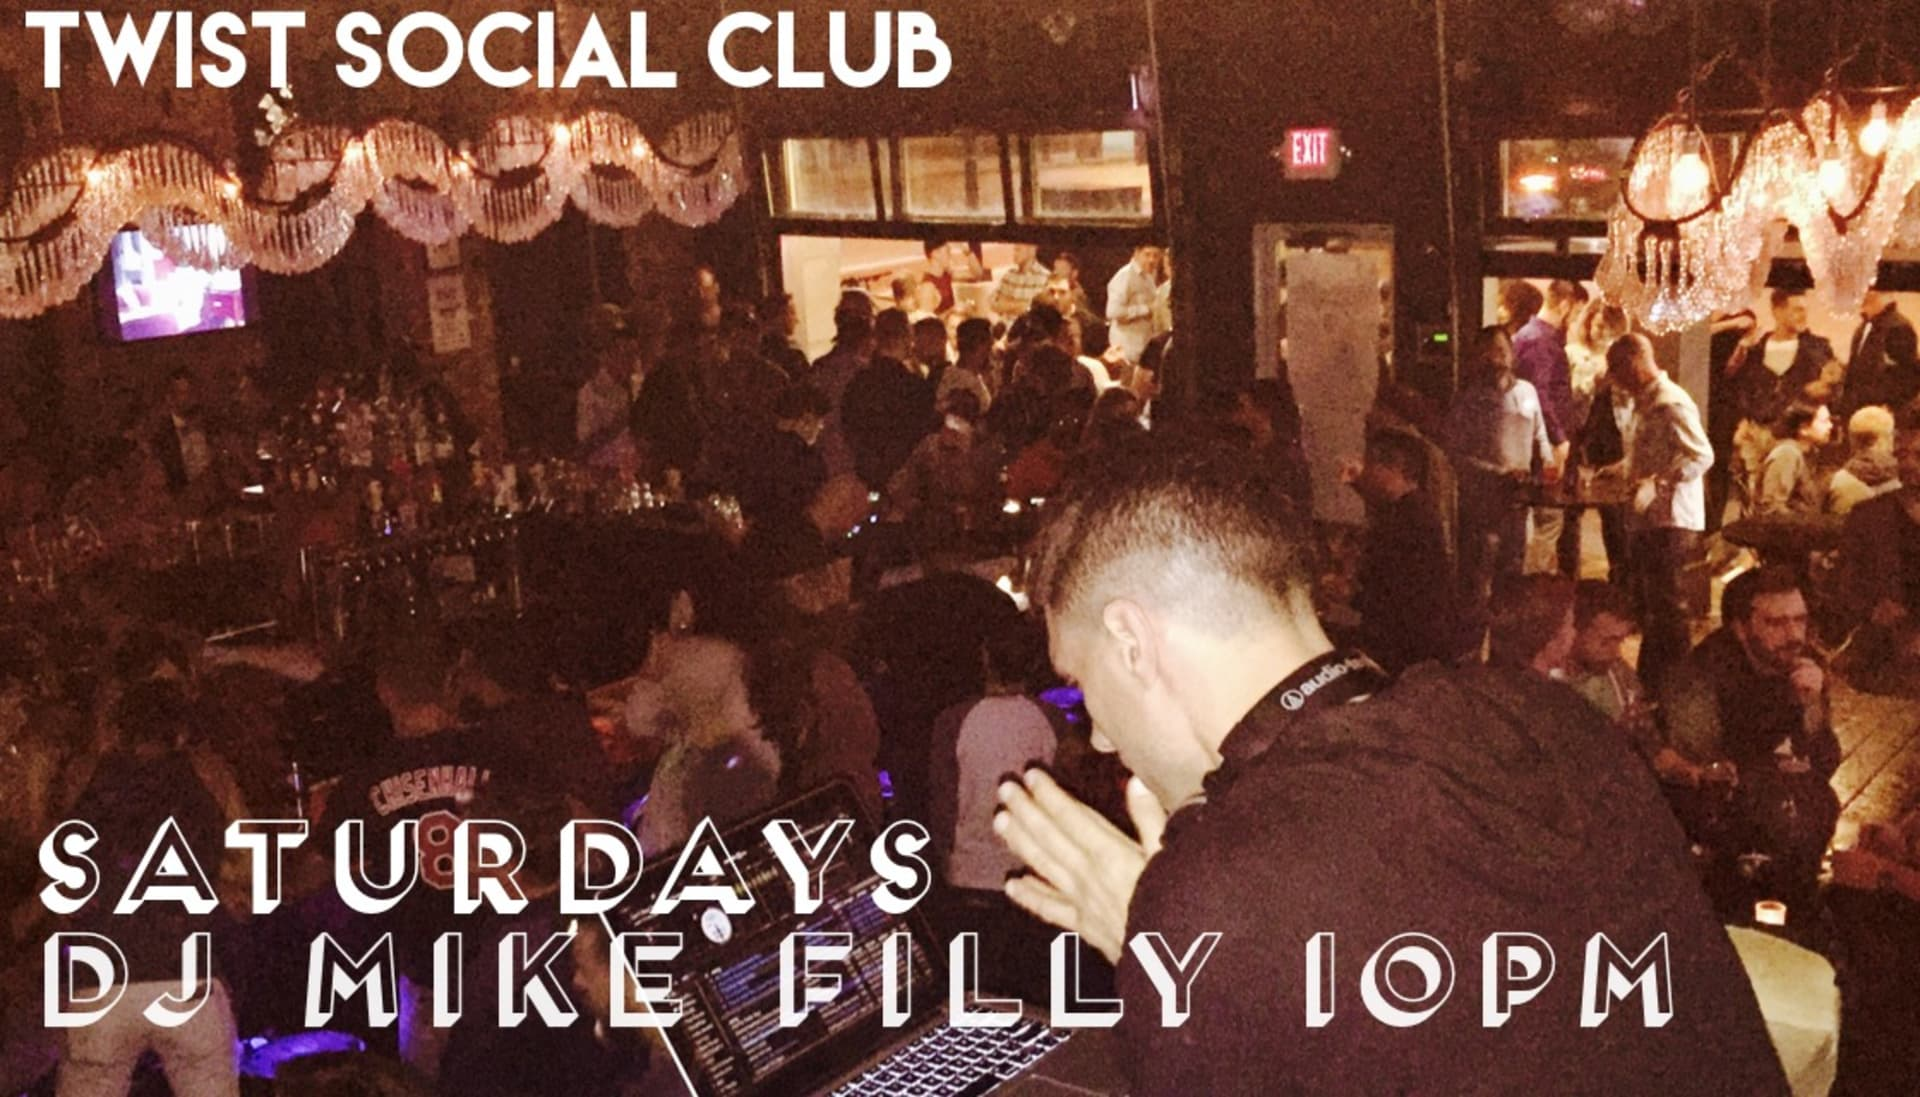 Saturday - DJ Mike Filly